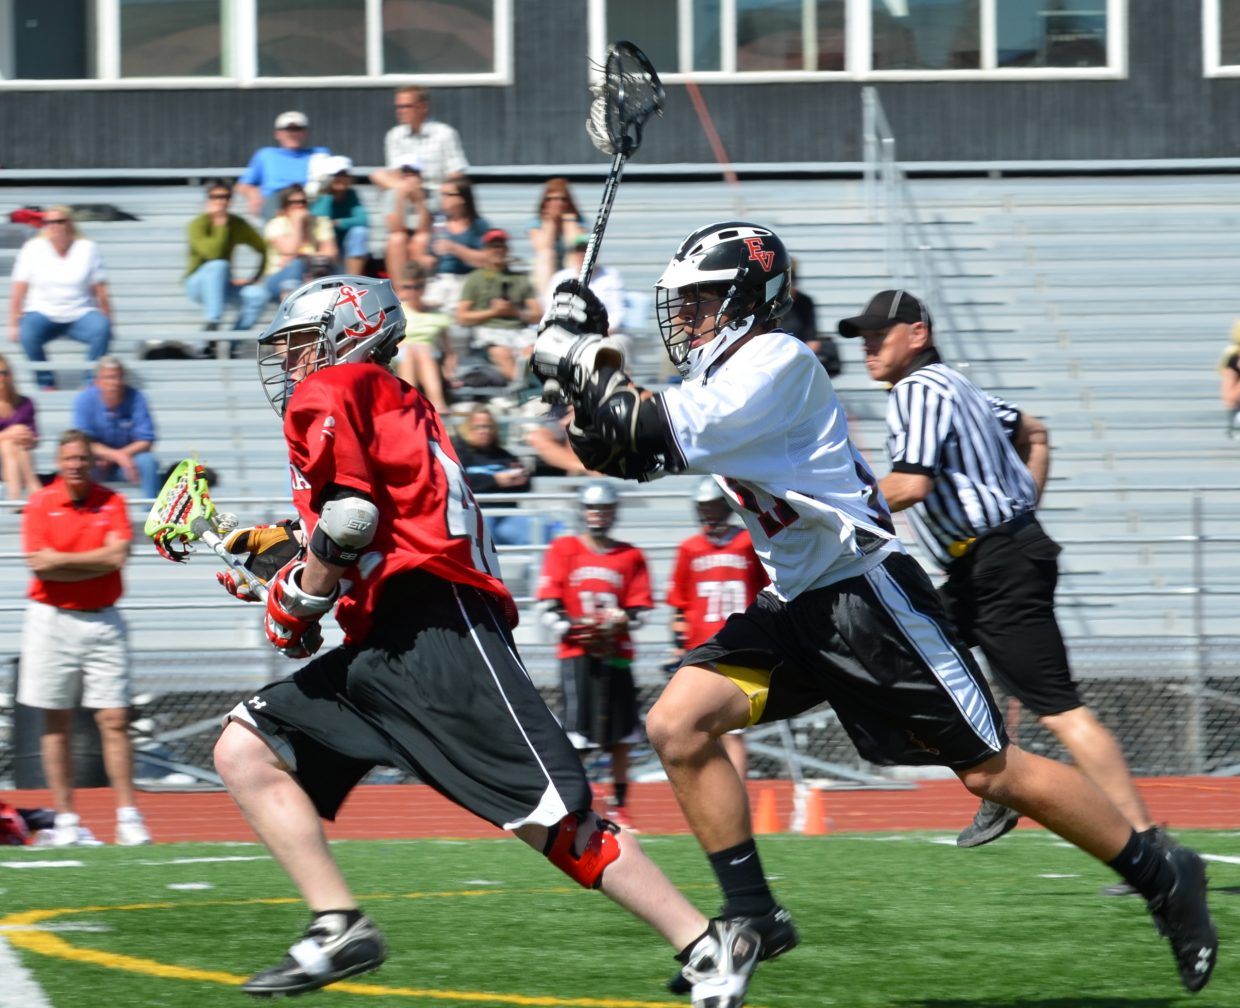 Steamboat lacrosse player Brad Ryan avoids the defender and heads downfield.